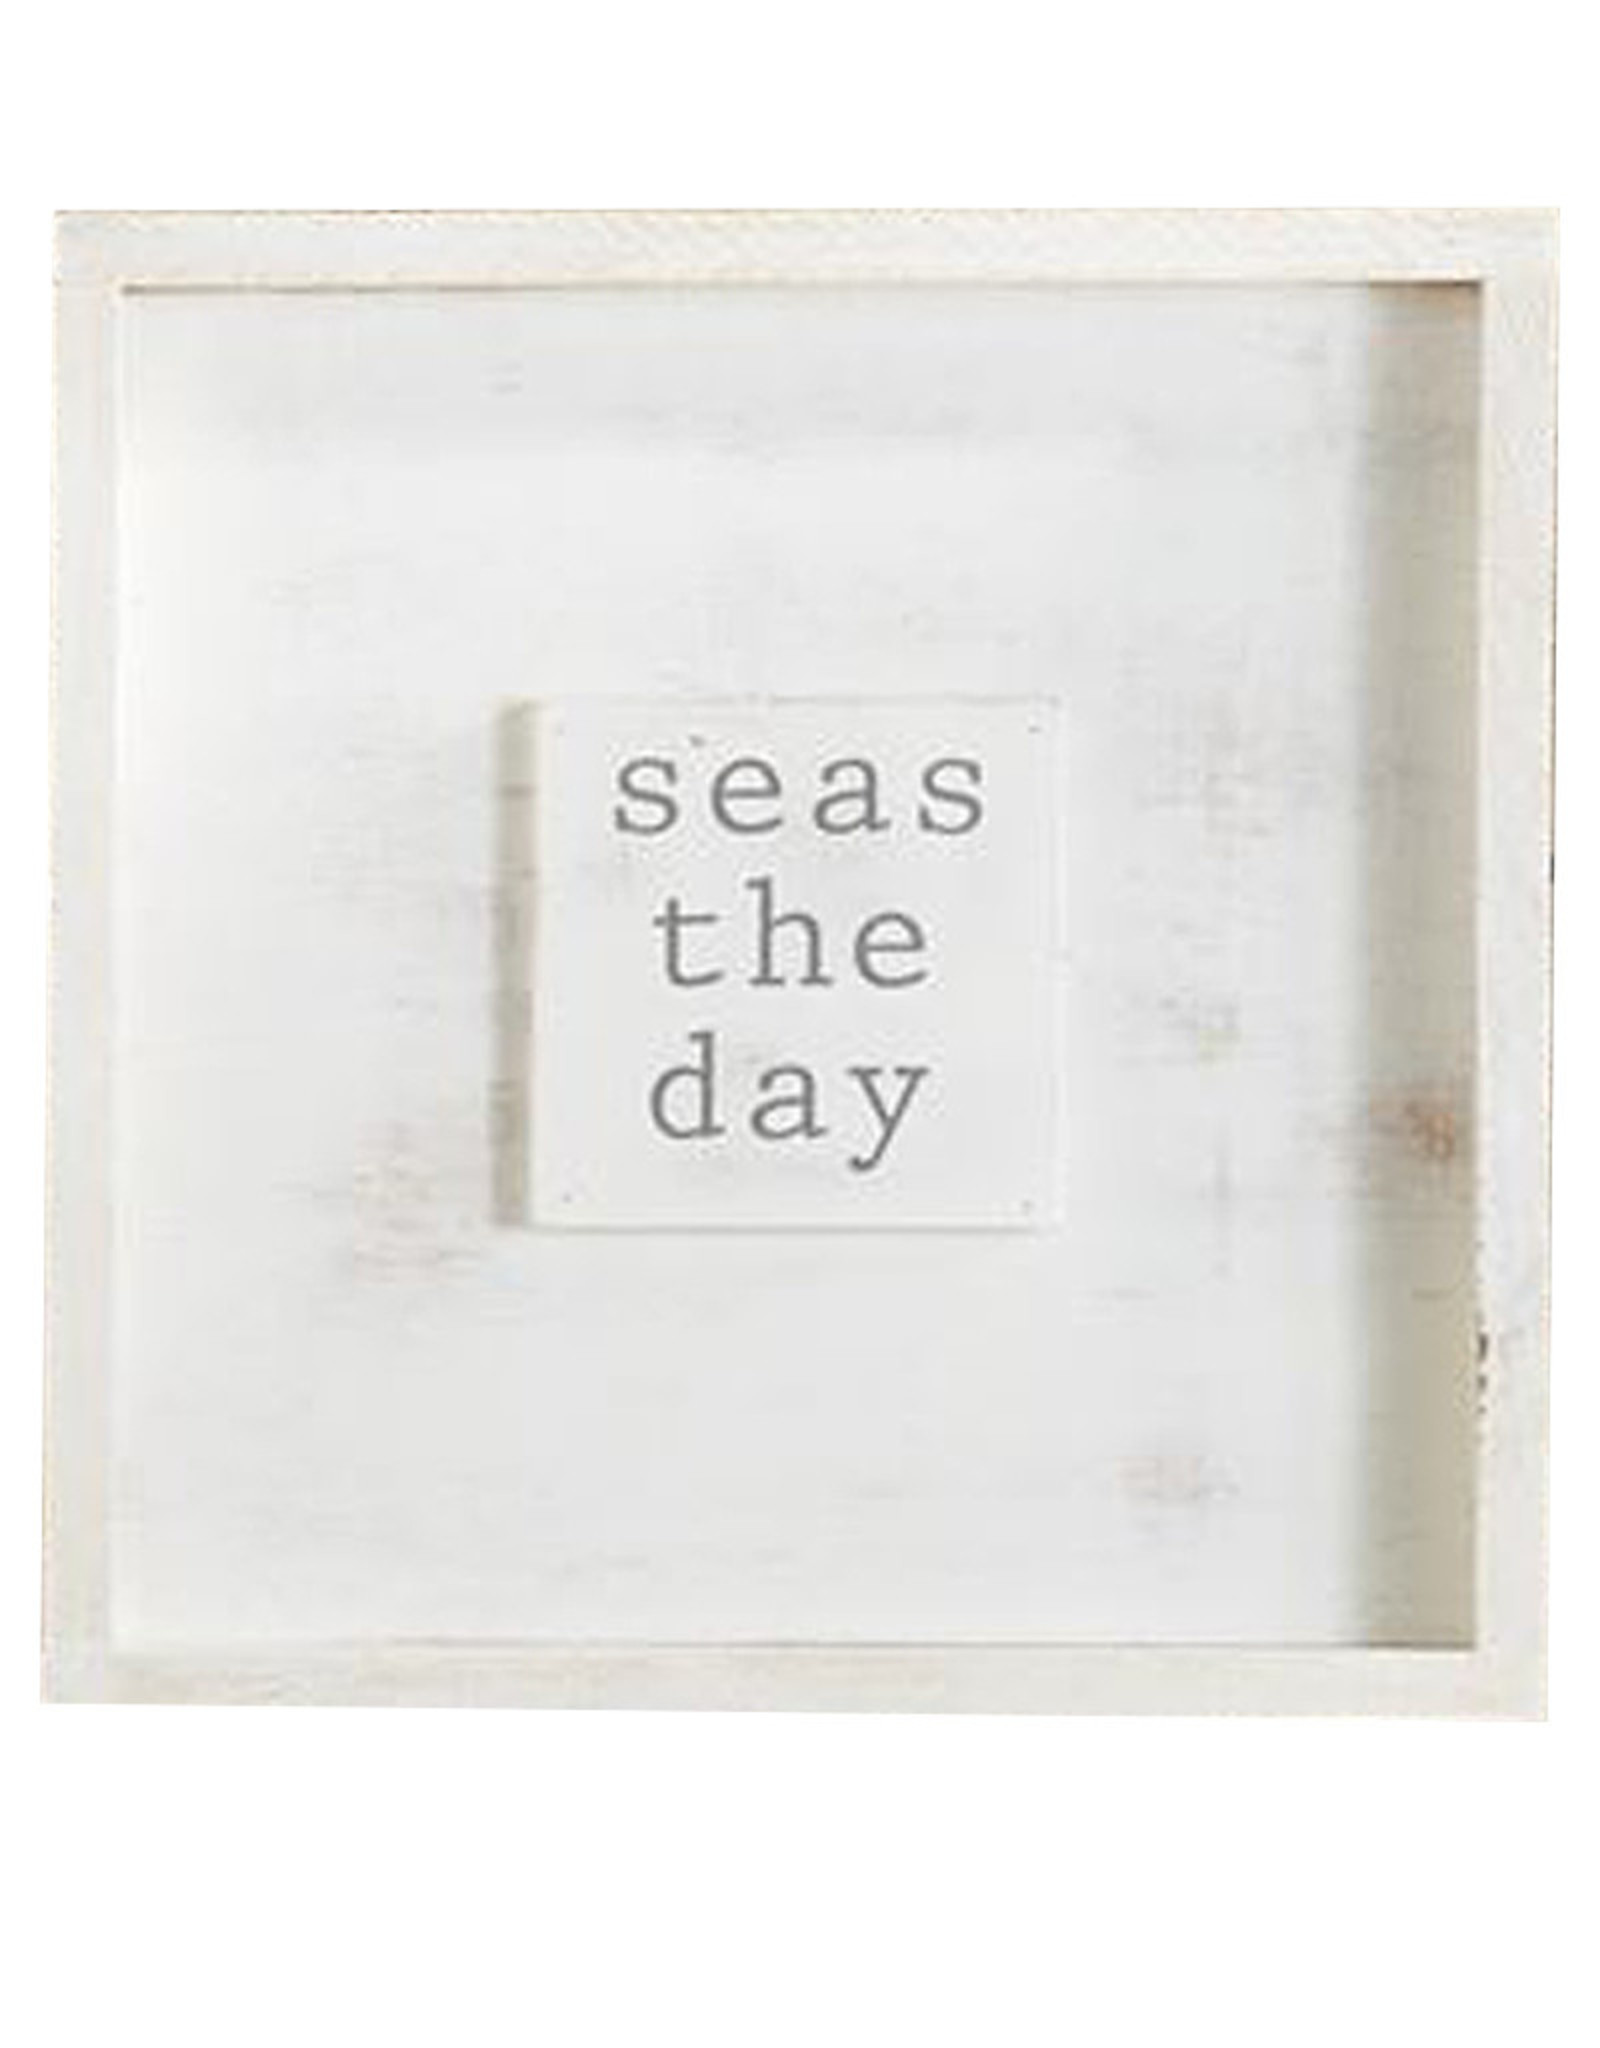 Mud Pie Small Beach House Framed Wall Plaque w Seas The Day